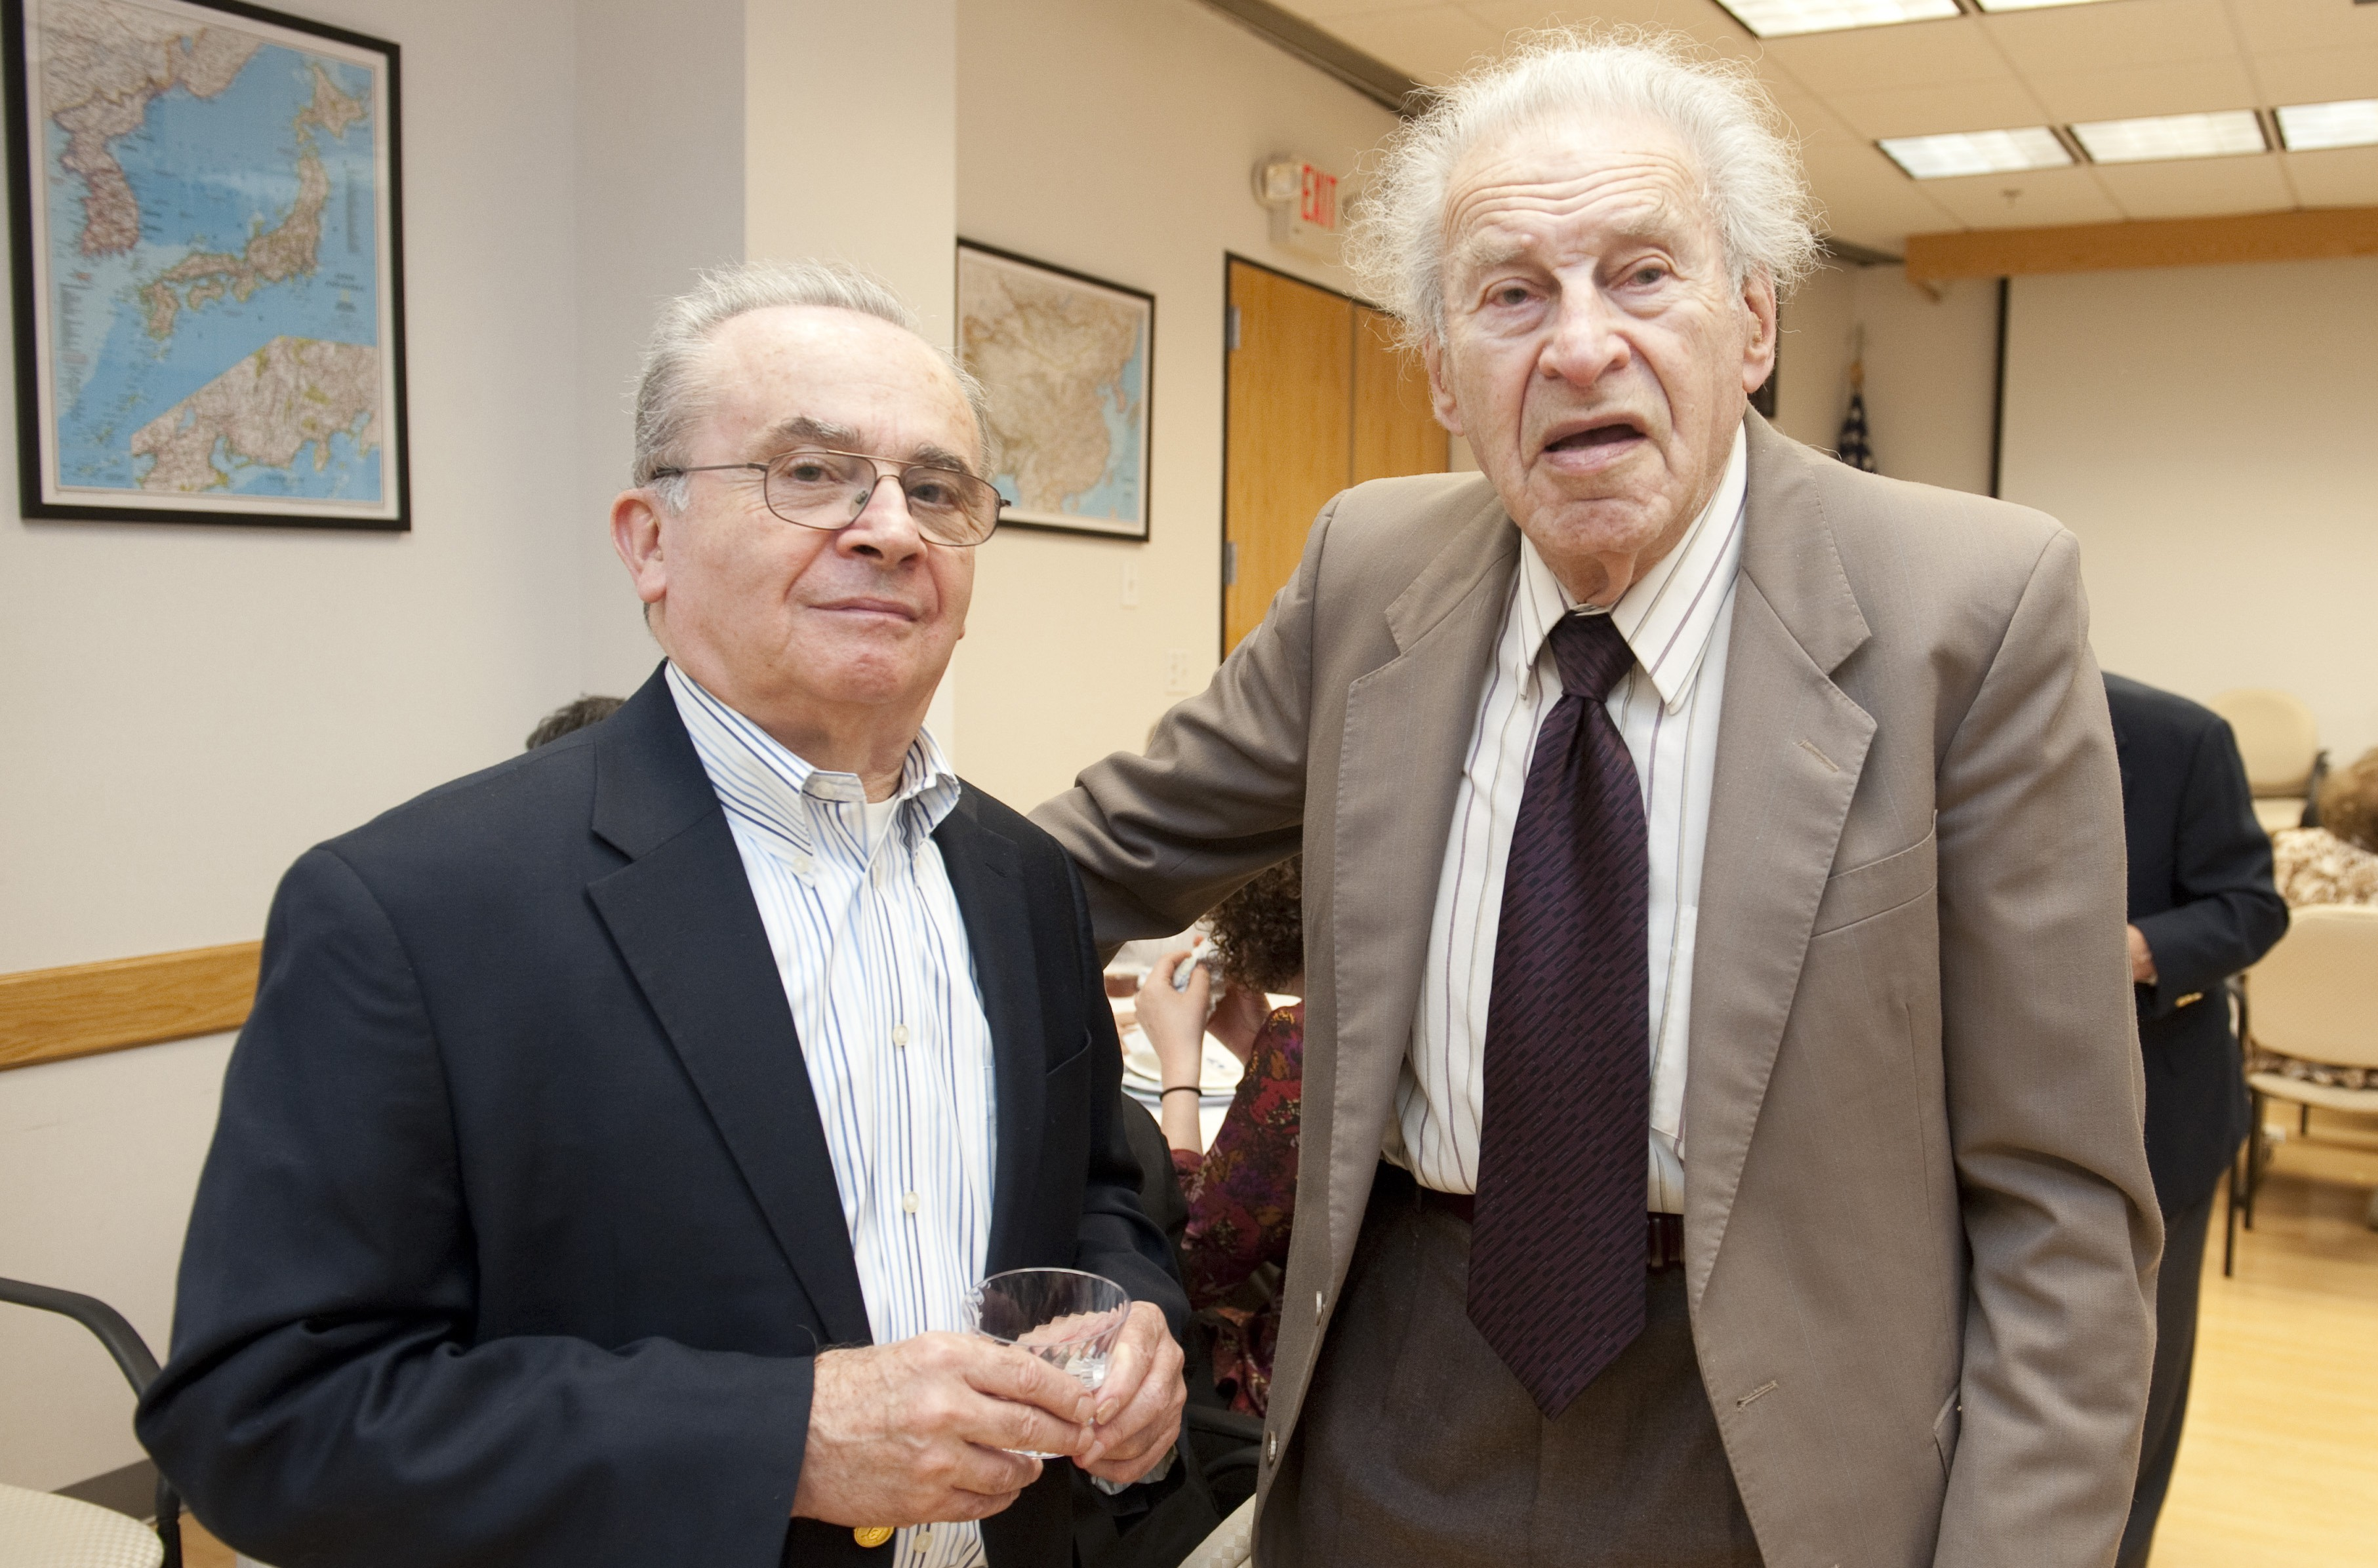 survivor recalls holocaust during natick article the photo credit david kamm nsrdec photographer view original